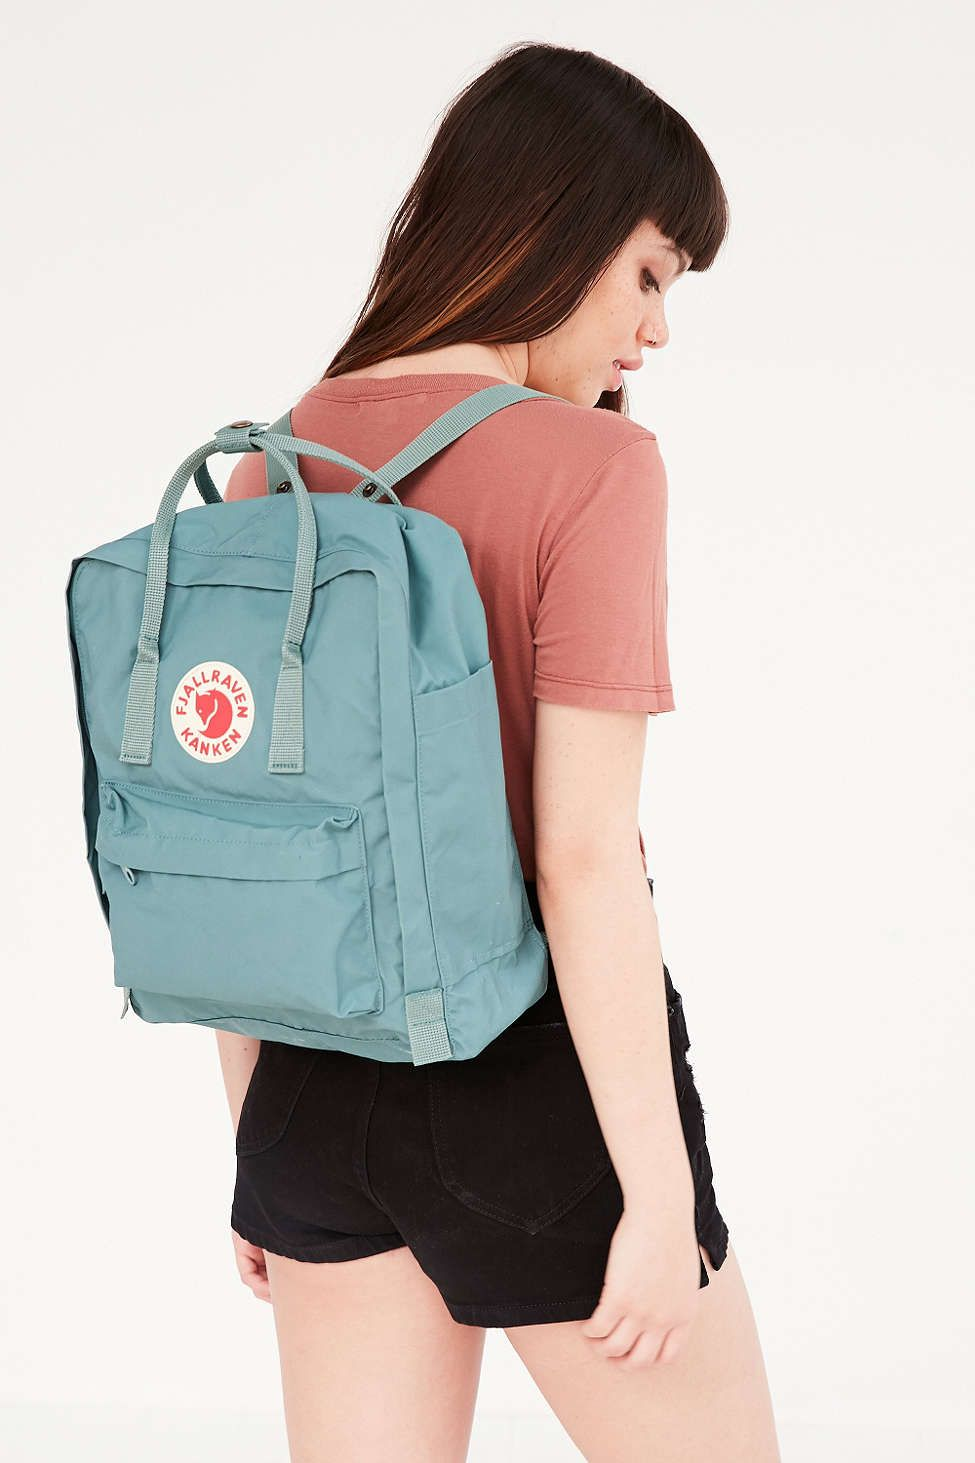 80ff419c5 Fjallraven Kanken Backpack urban outfitters $75 (I like this light blue  color the best, my second favorite is the army green),